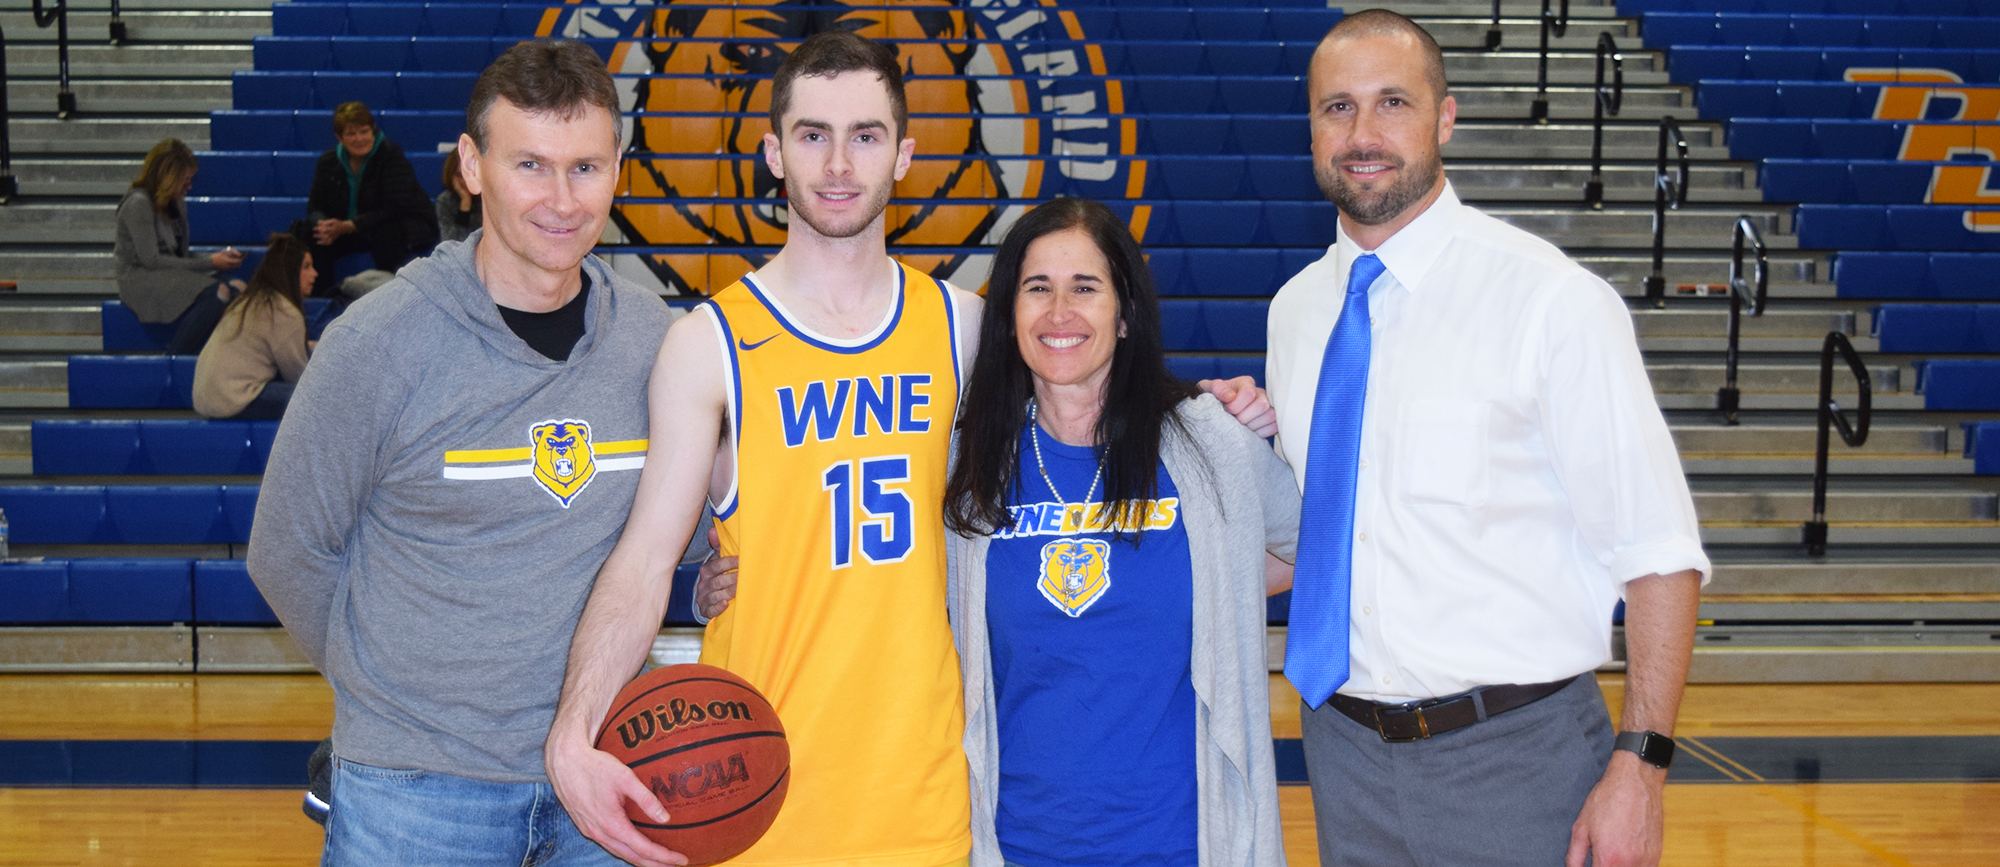 Mike McGuire became the 24th Golden Bear to reach 1,000 career points following his 21-point performance in Western New England's 93-79 win over Roger Williams on Saturday.